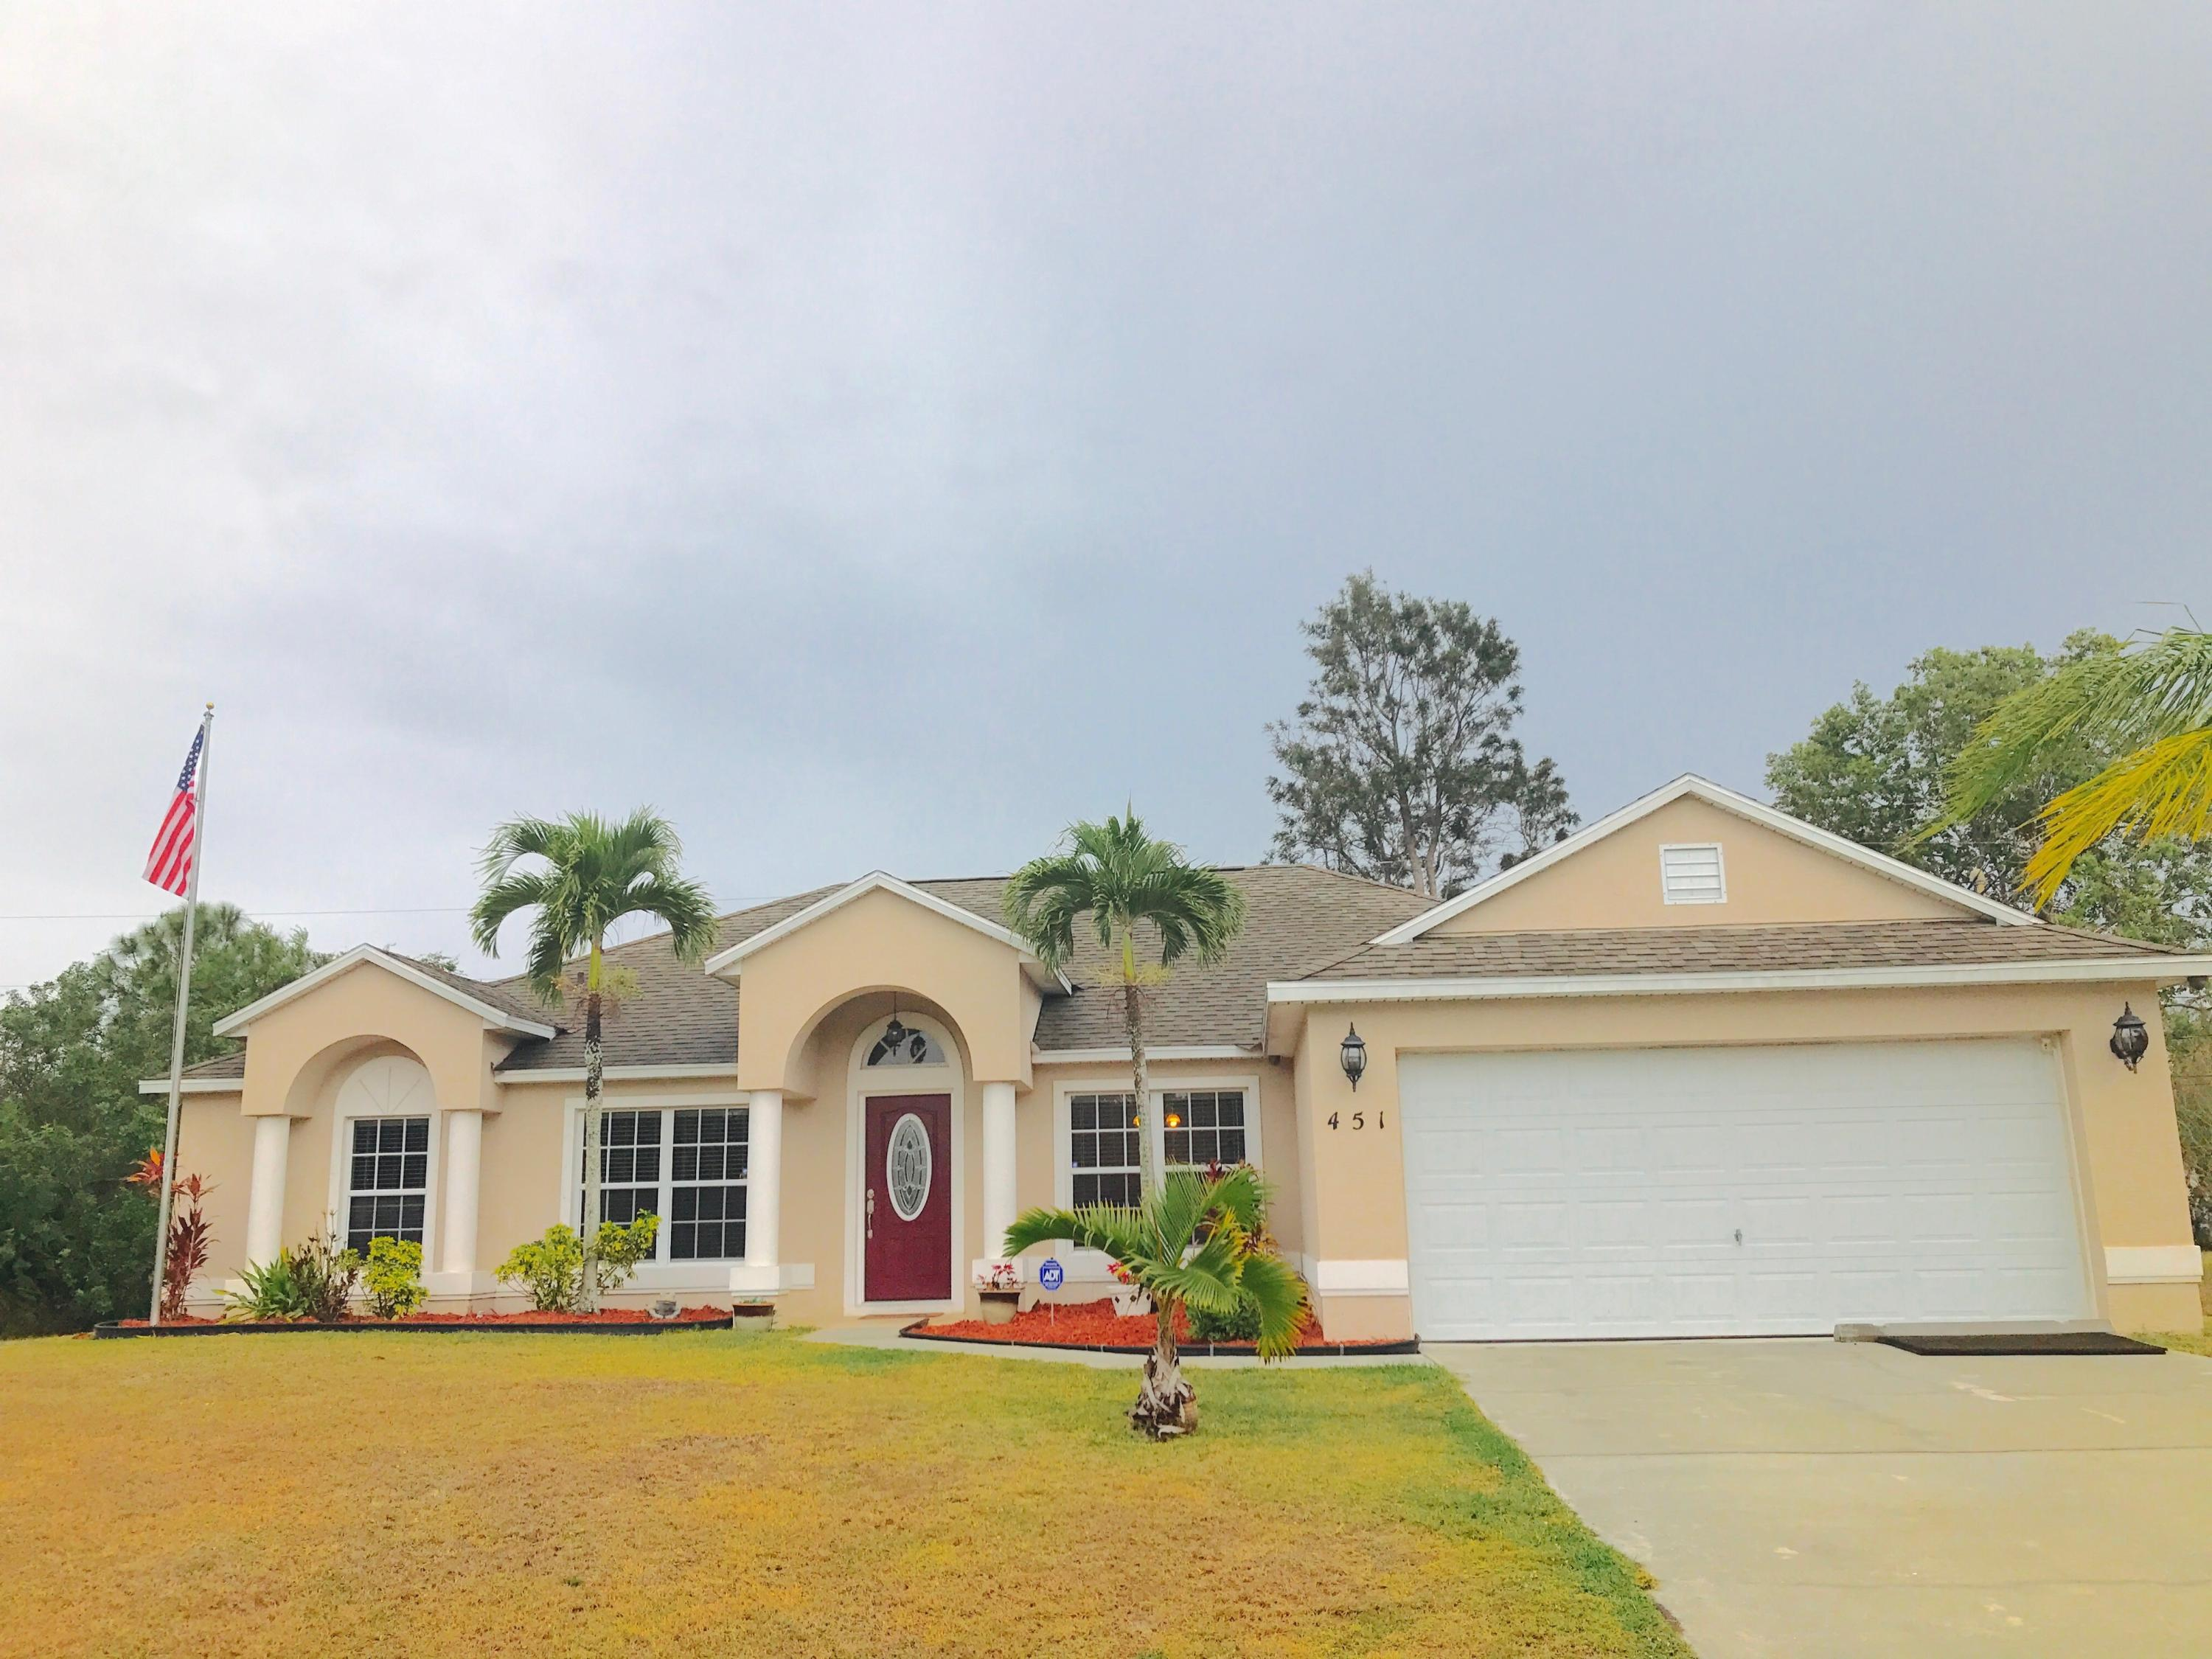 451 Kabot Port Saint Lucie 34953